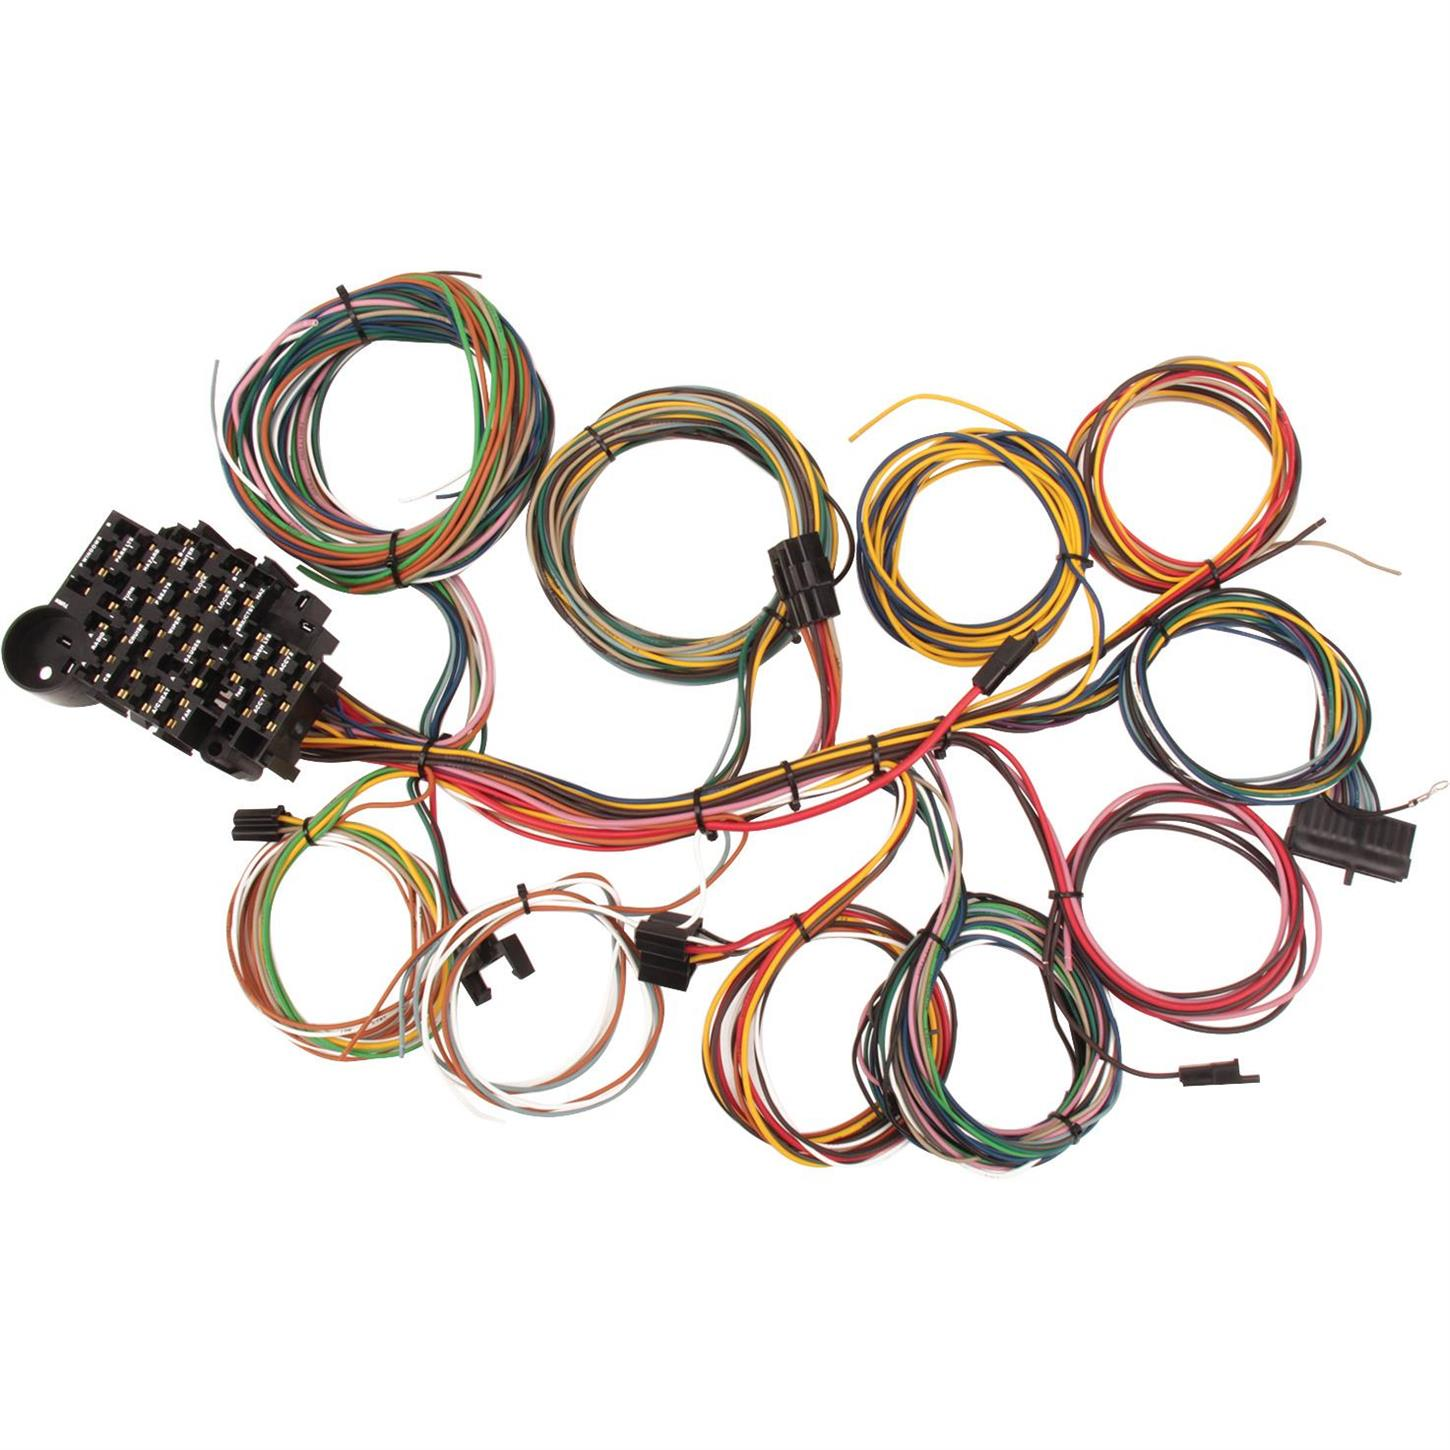 Shop Chassis Wire Harnesses Free Shipping Speedway Motors 36 Chevy Truck Harness Universal 22 Circuit Wiring